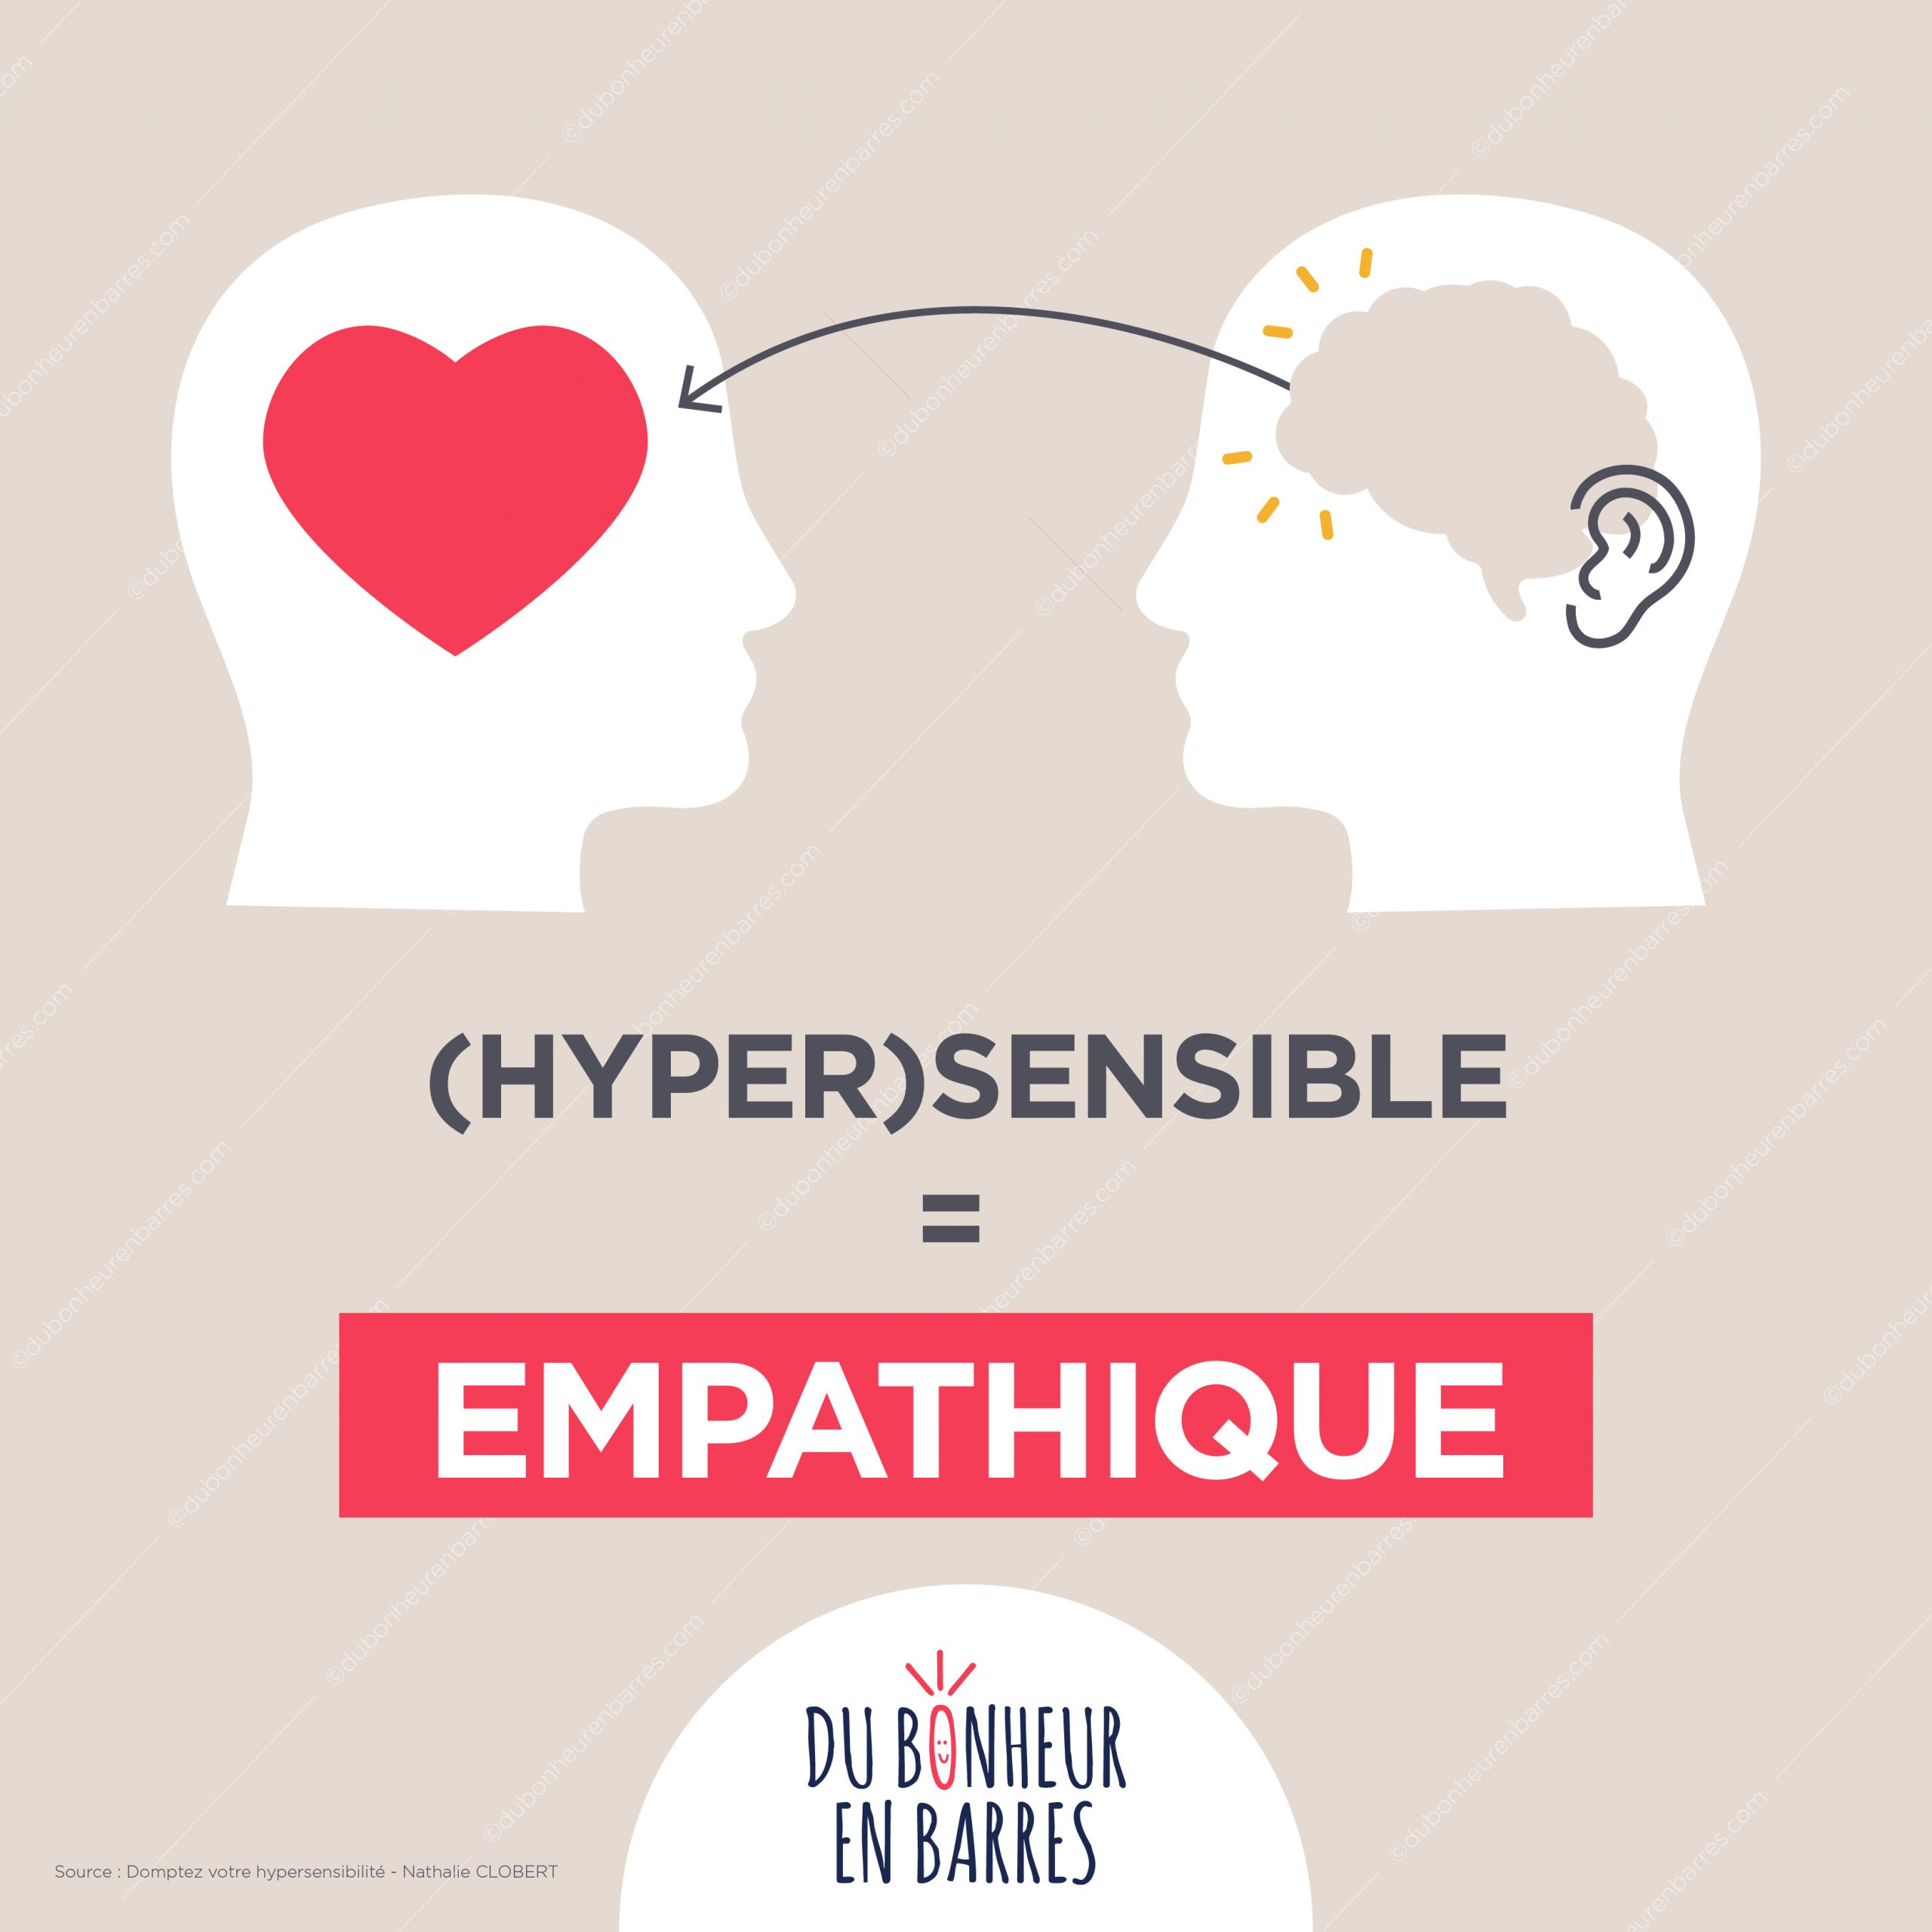 Hypersensible = empathique